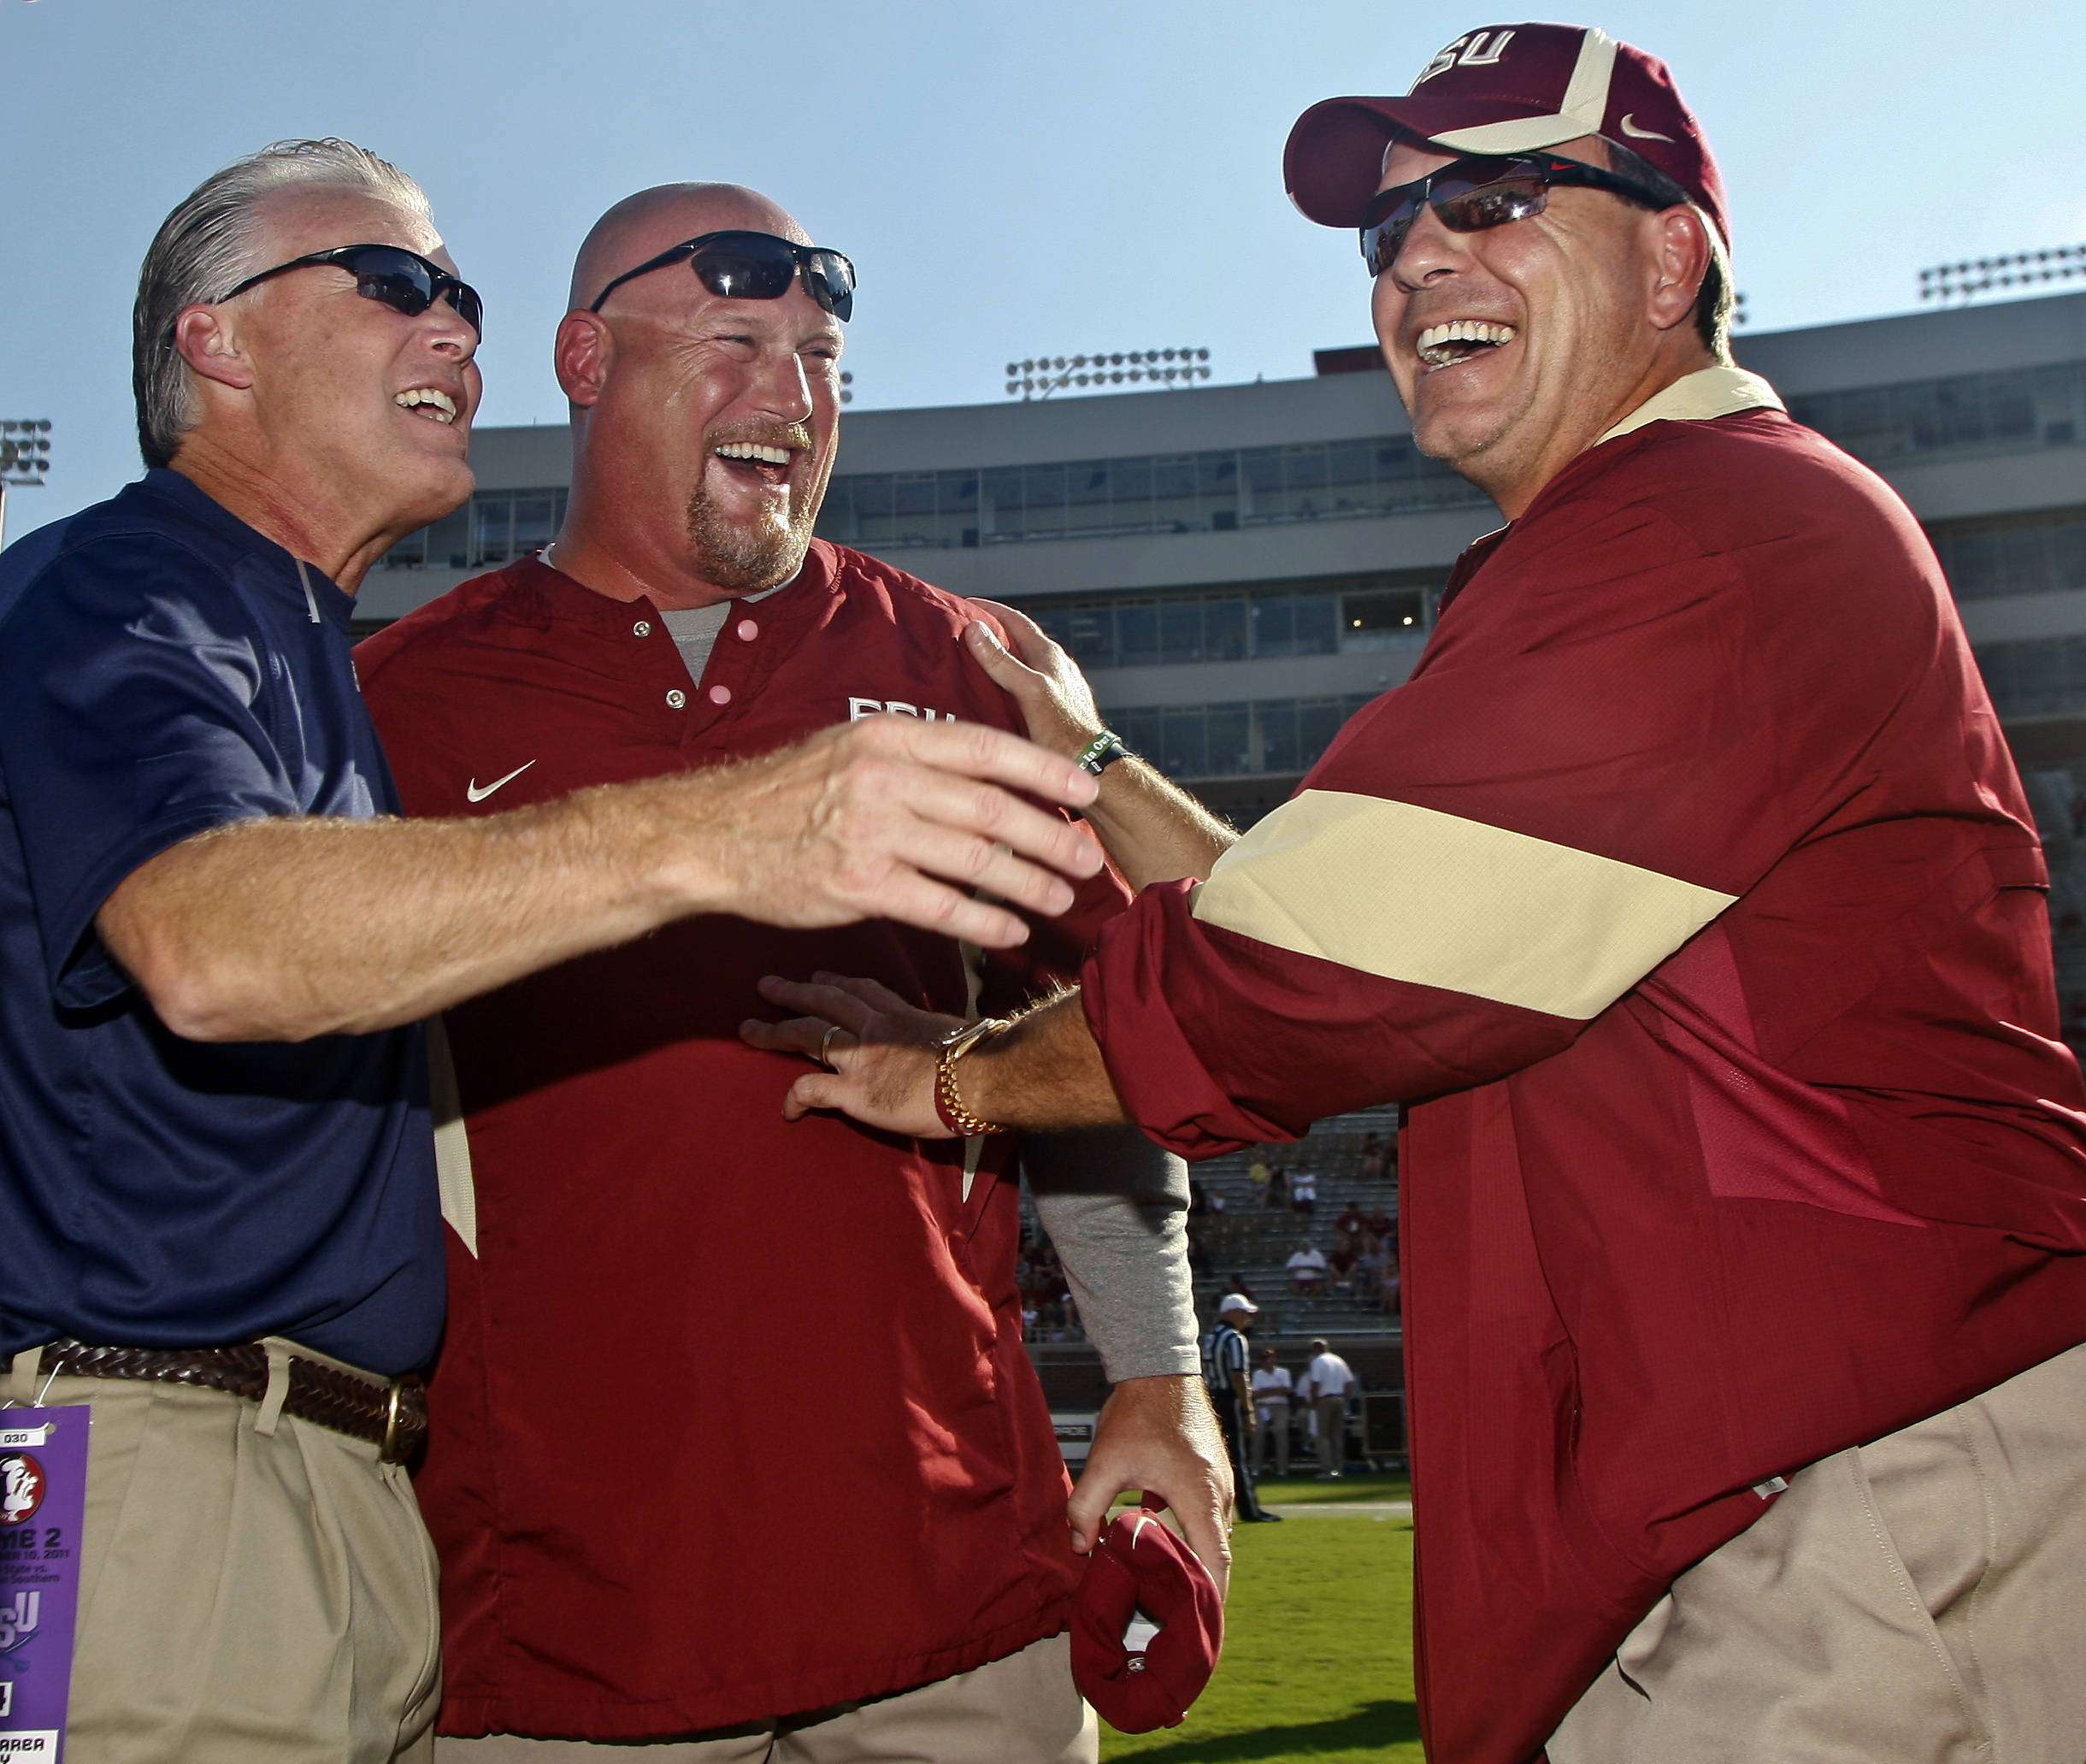 Charleston Southern head coach Jay Mills, left, laughs with Florida State linebackers coach Greg Hudson and head coach Jimbo Fisher, right, prior to the start of an NCAA college football game on Saturday, Sept. 10, 2011, in Tallahassee, Fla. (AP Photo/Phil Sears)